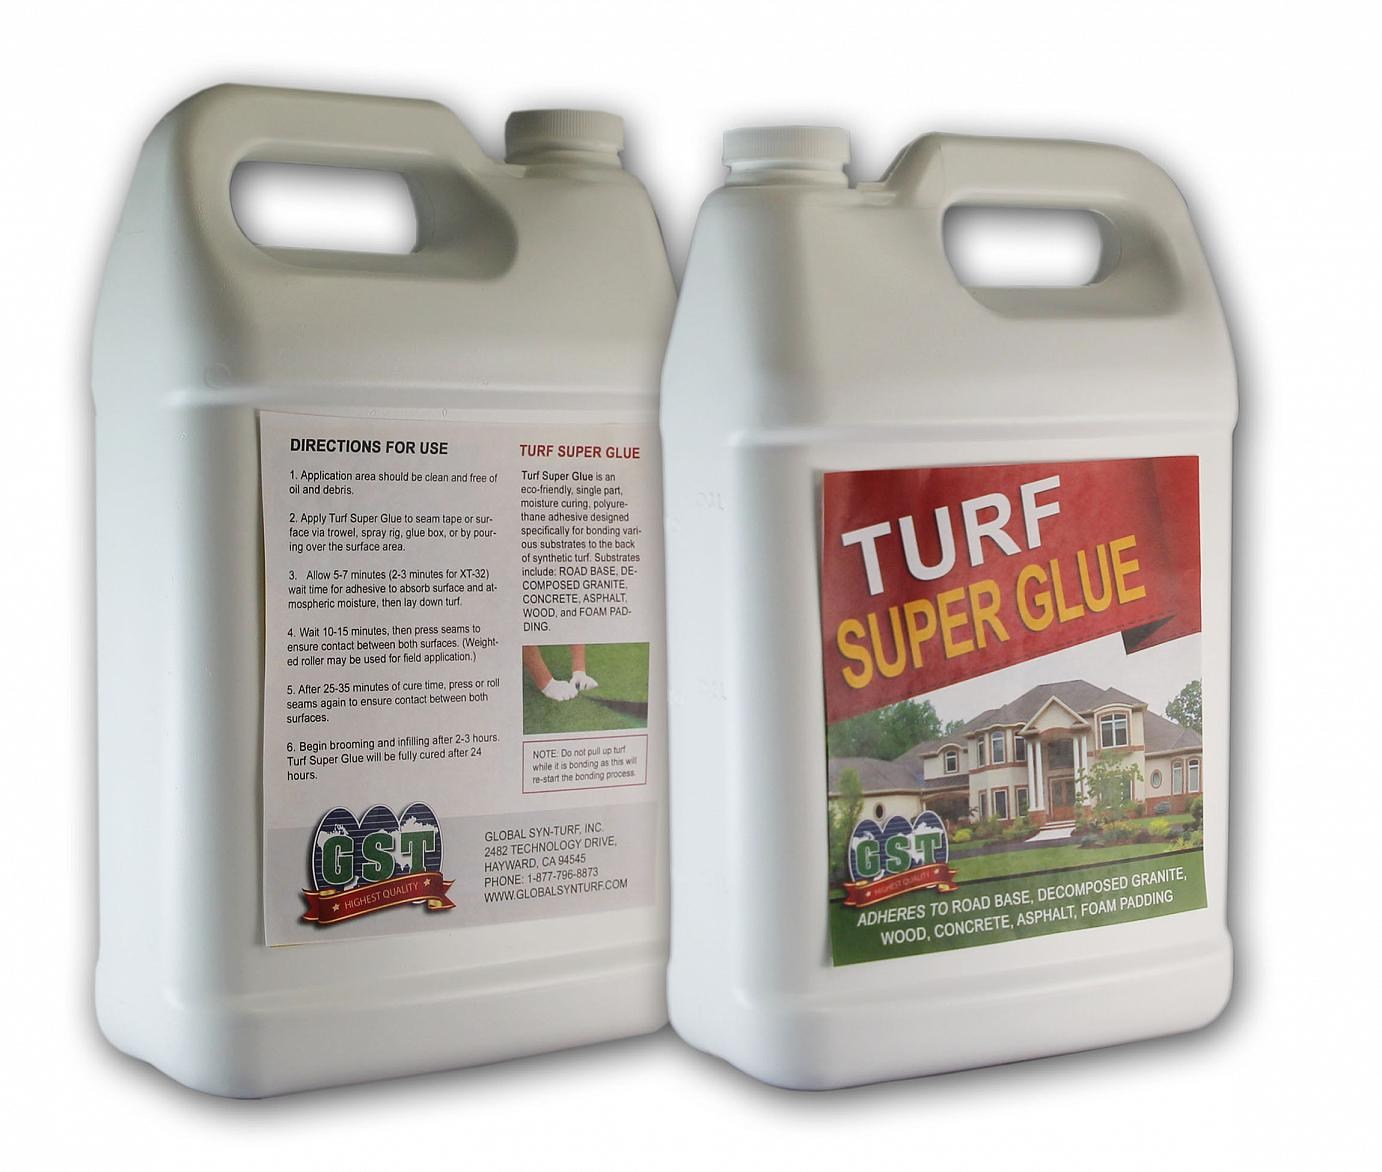 fake-grass Global Syn-Turf Launches New Eco-friendly Products to Help Companies Adapt to Growing Demand for Artificial Grass